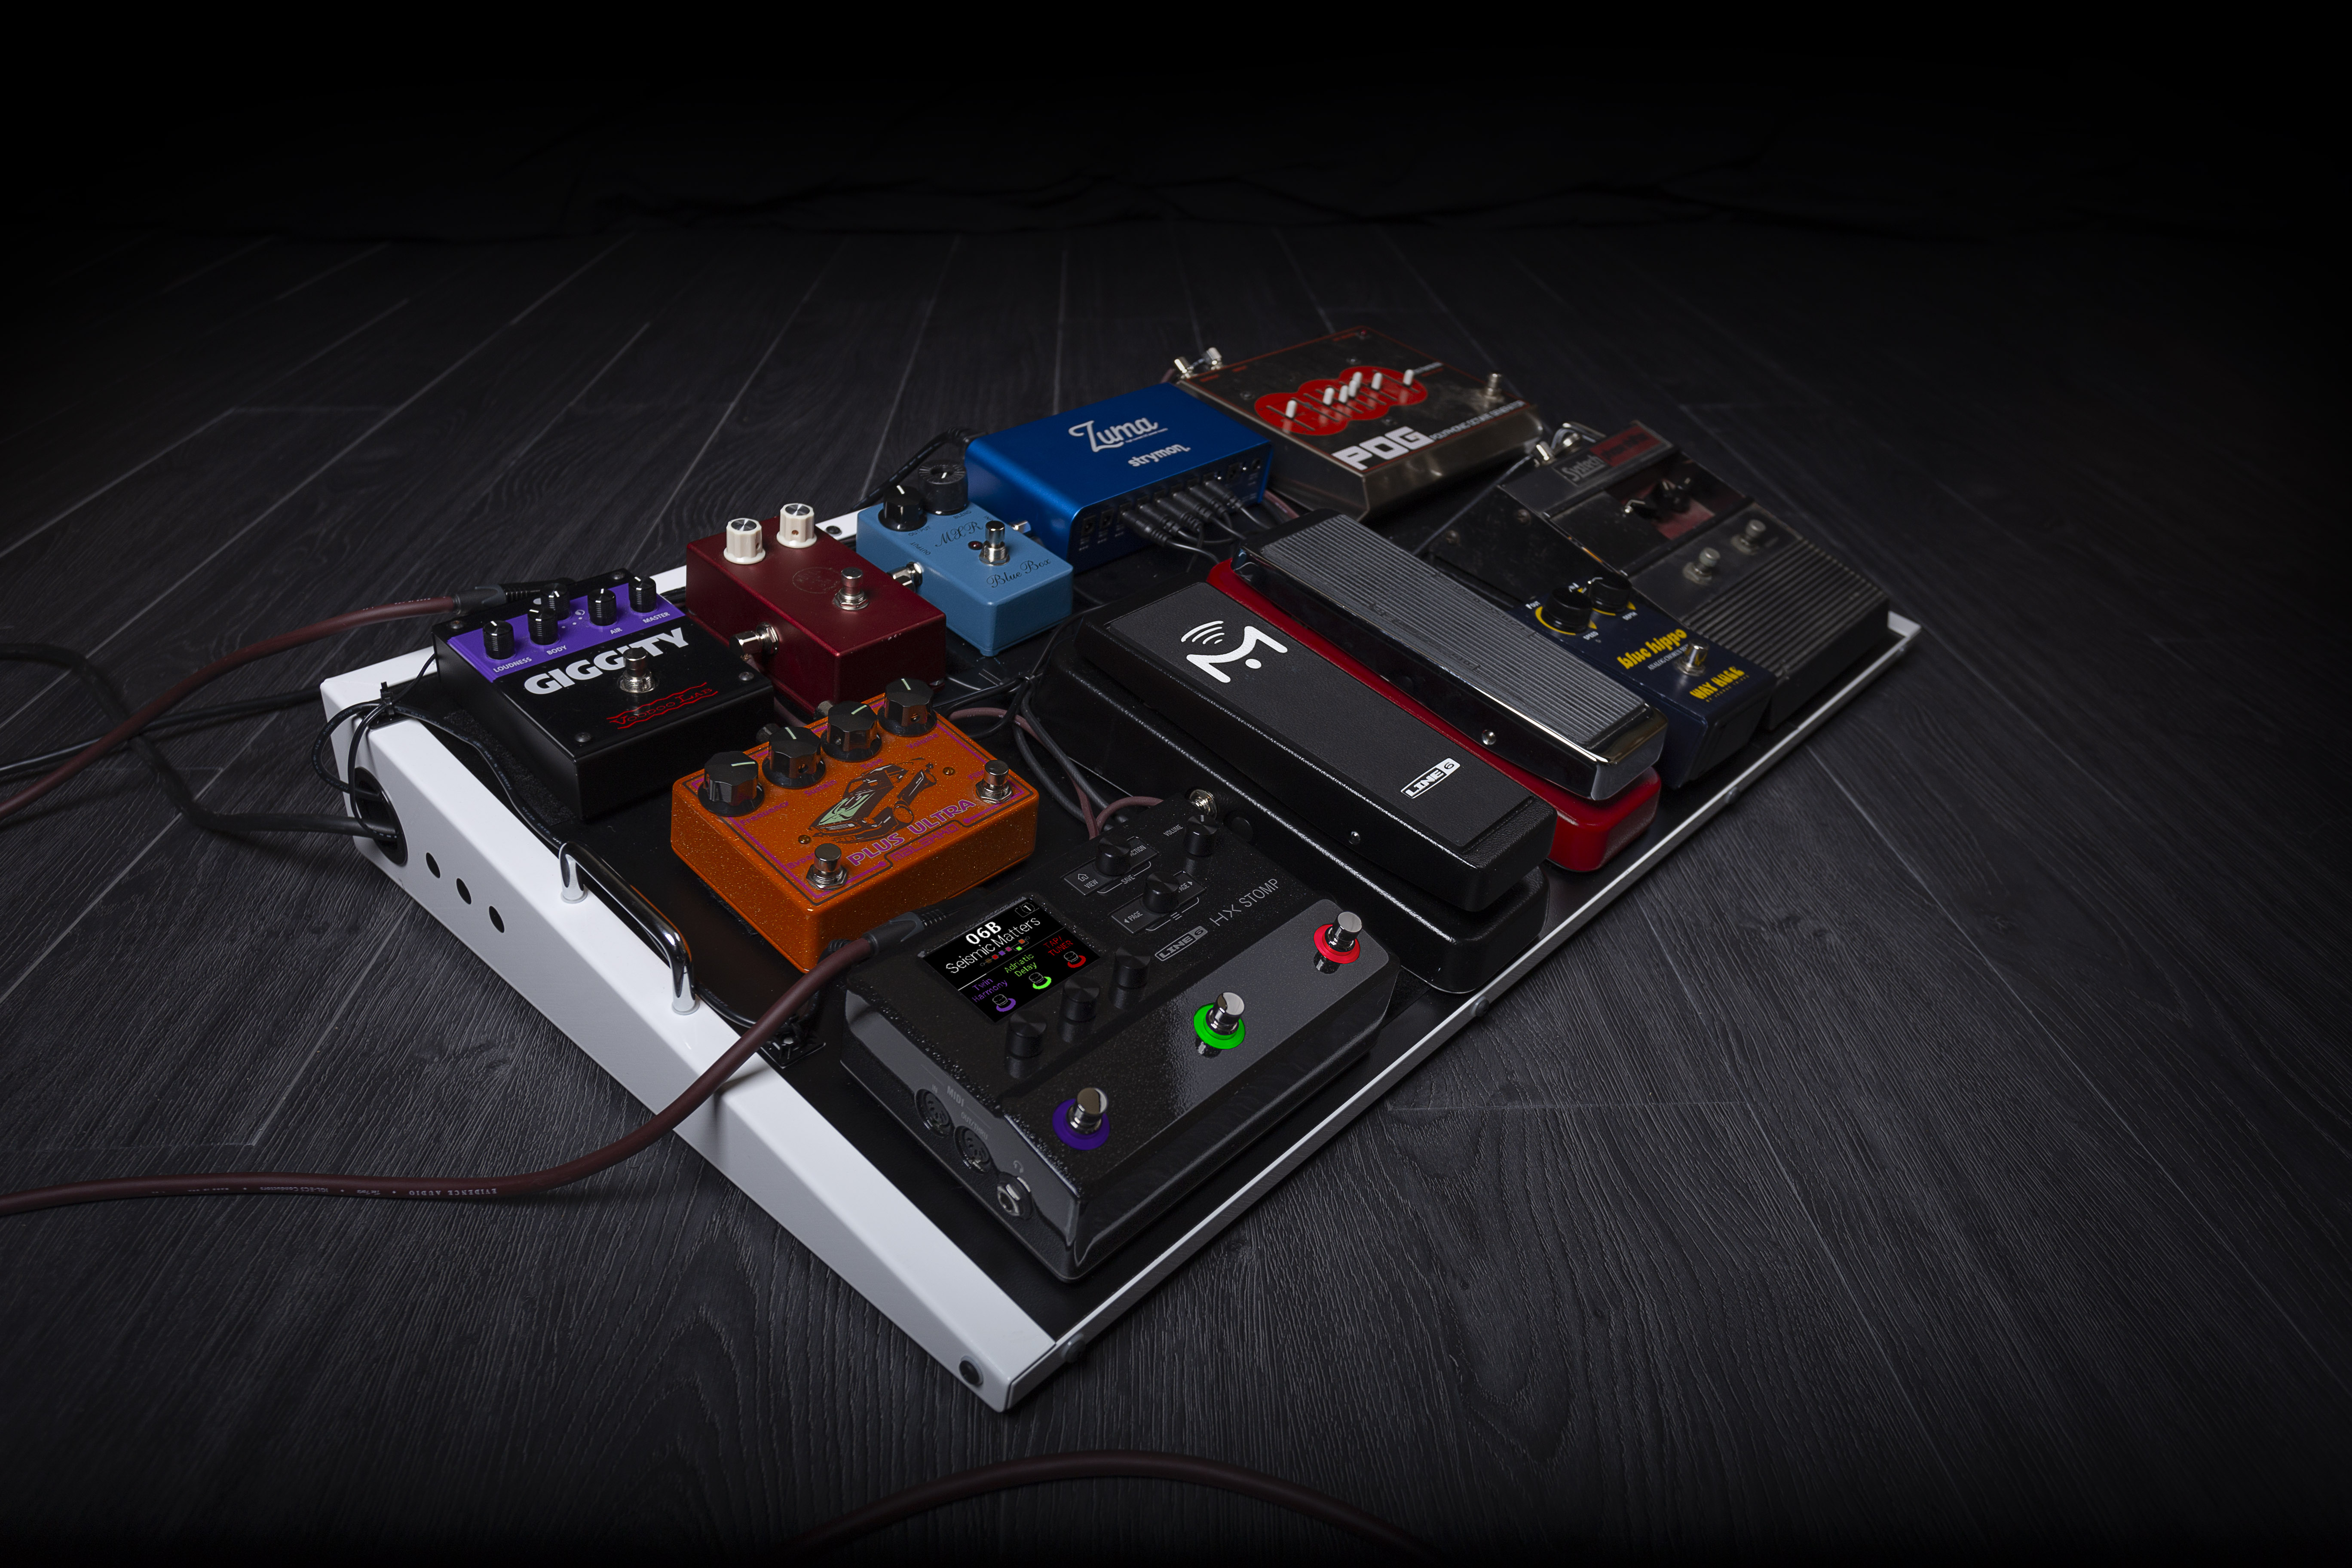 Press Release: Line 6 reveal HX Stomp Multi-Effects Processor